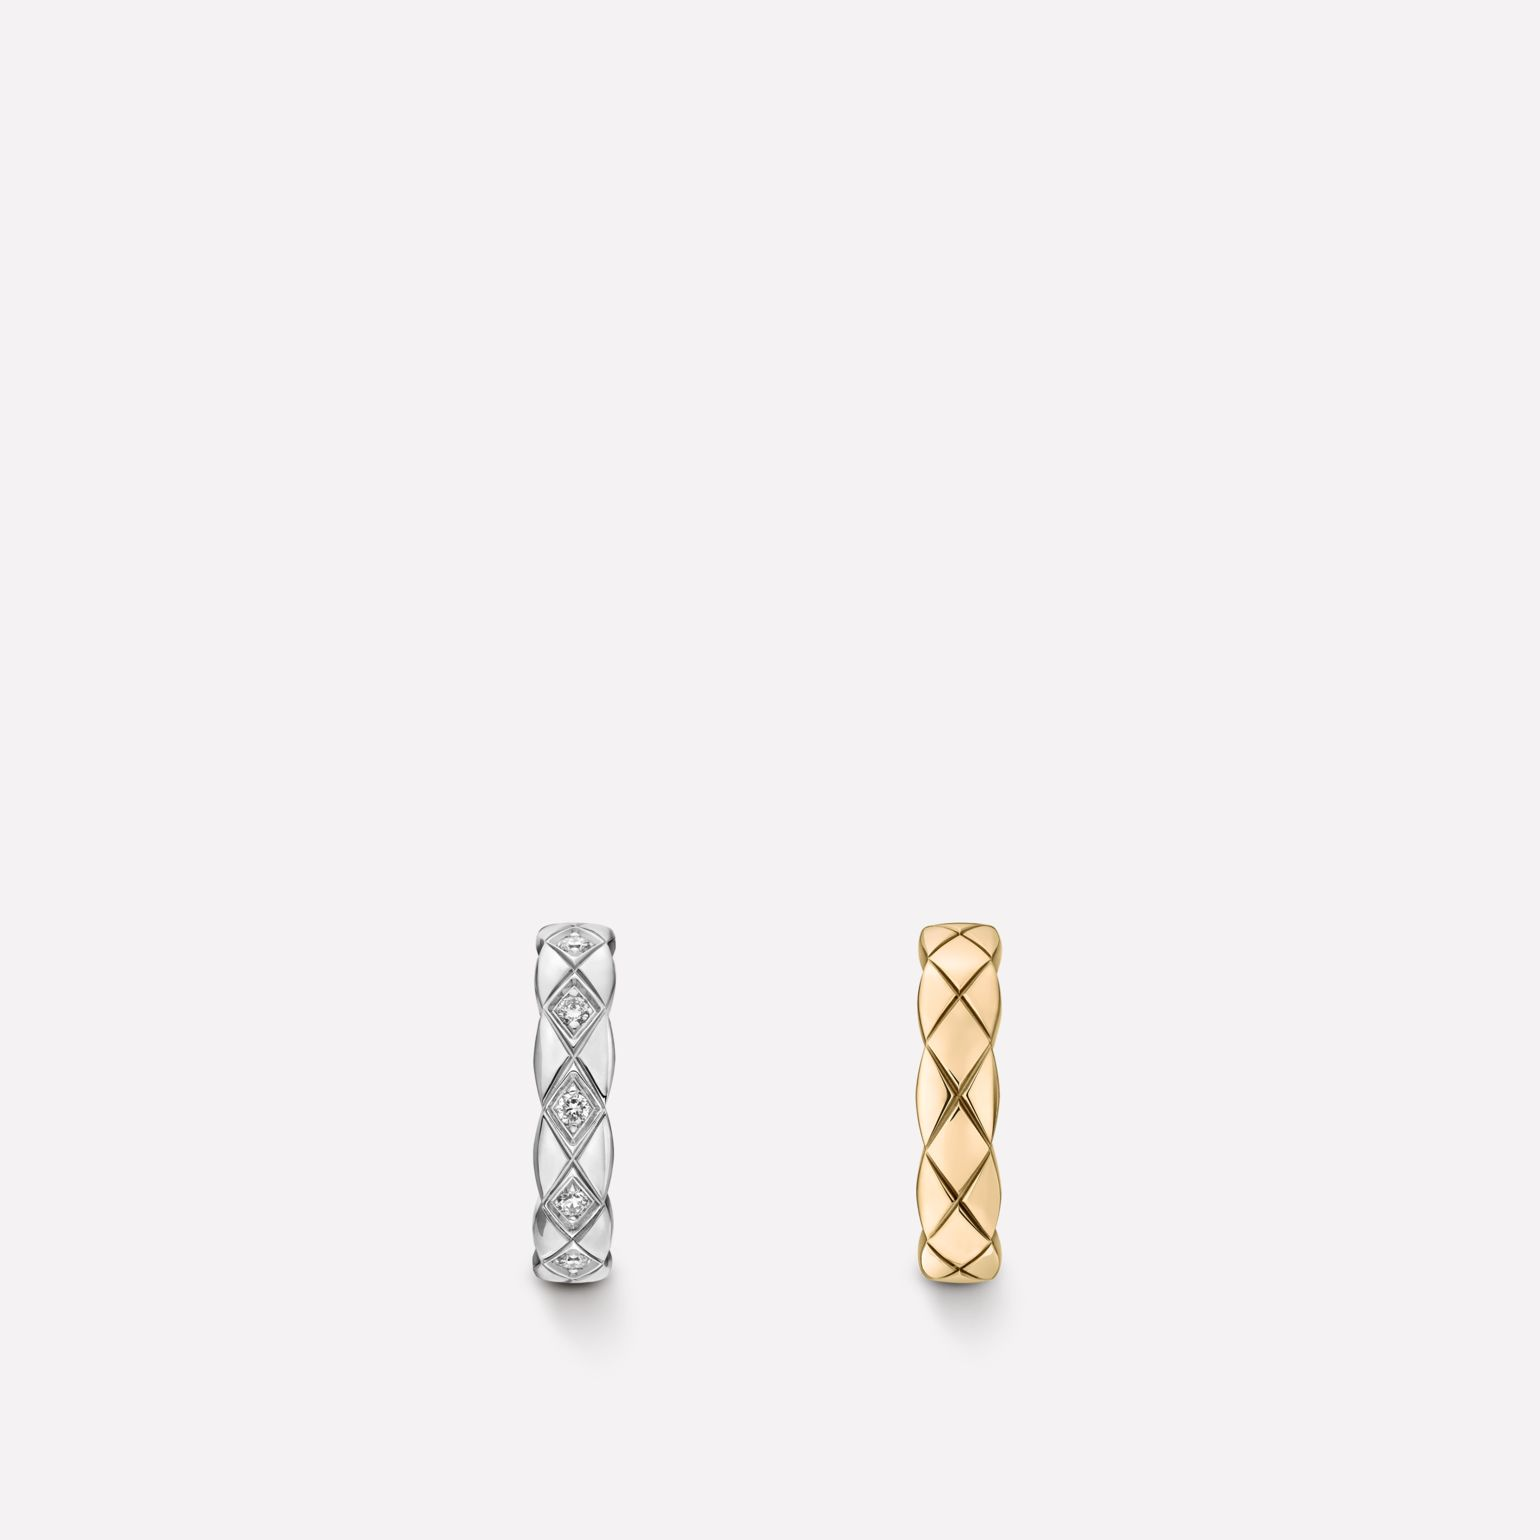 Coco Crush earrings Quilted motif, 18K white and BEIGE GOLD, diamonds